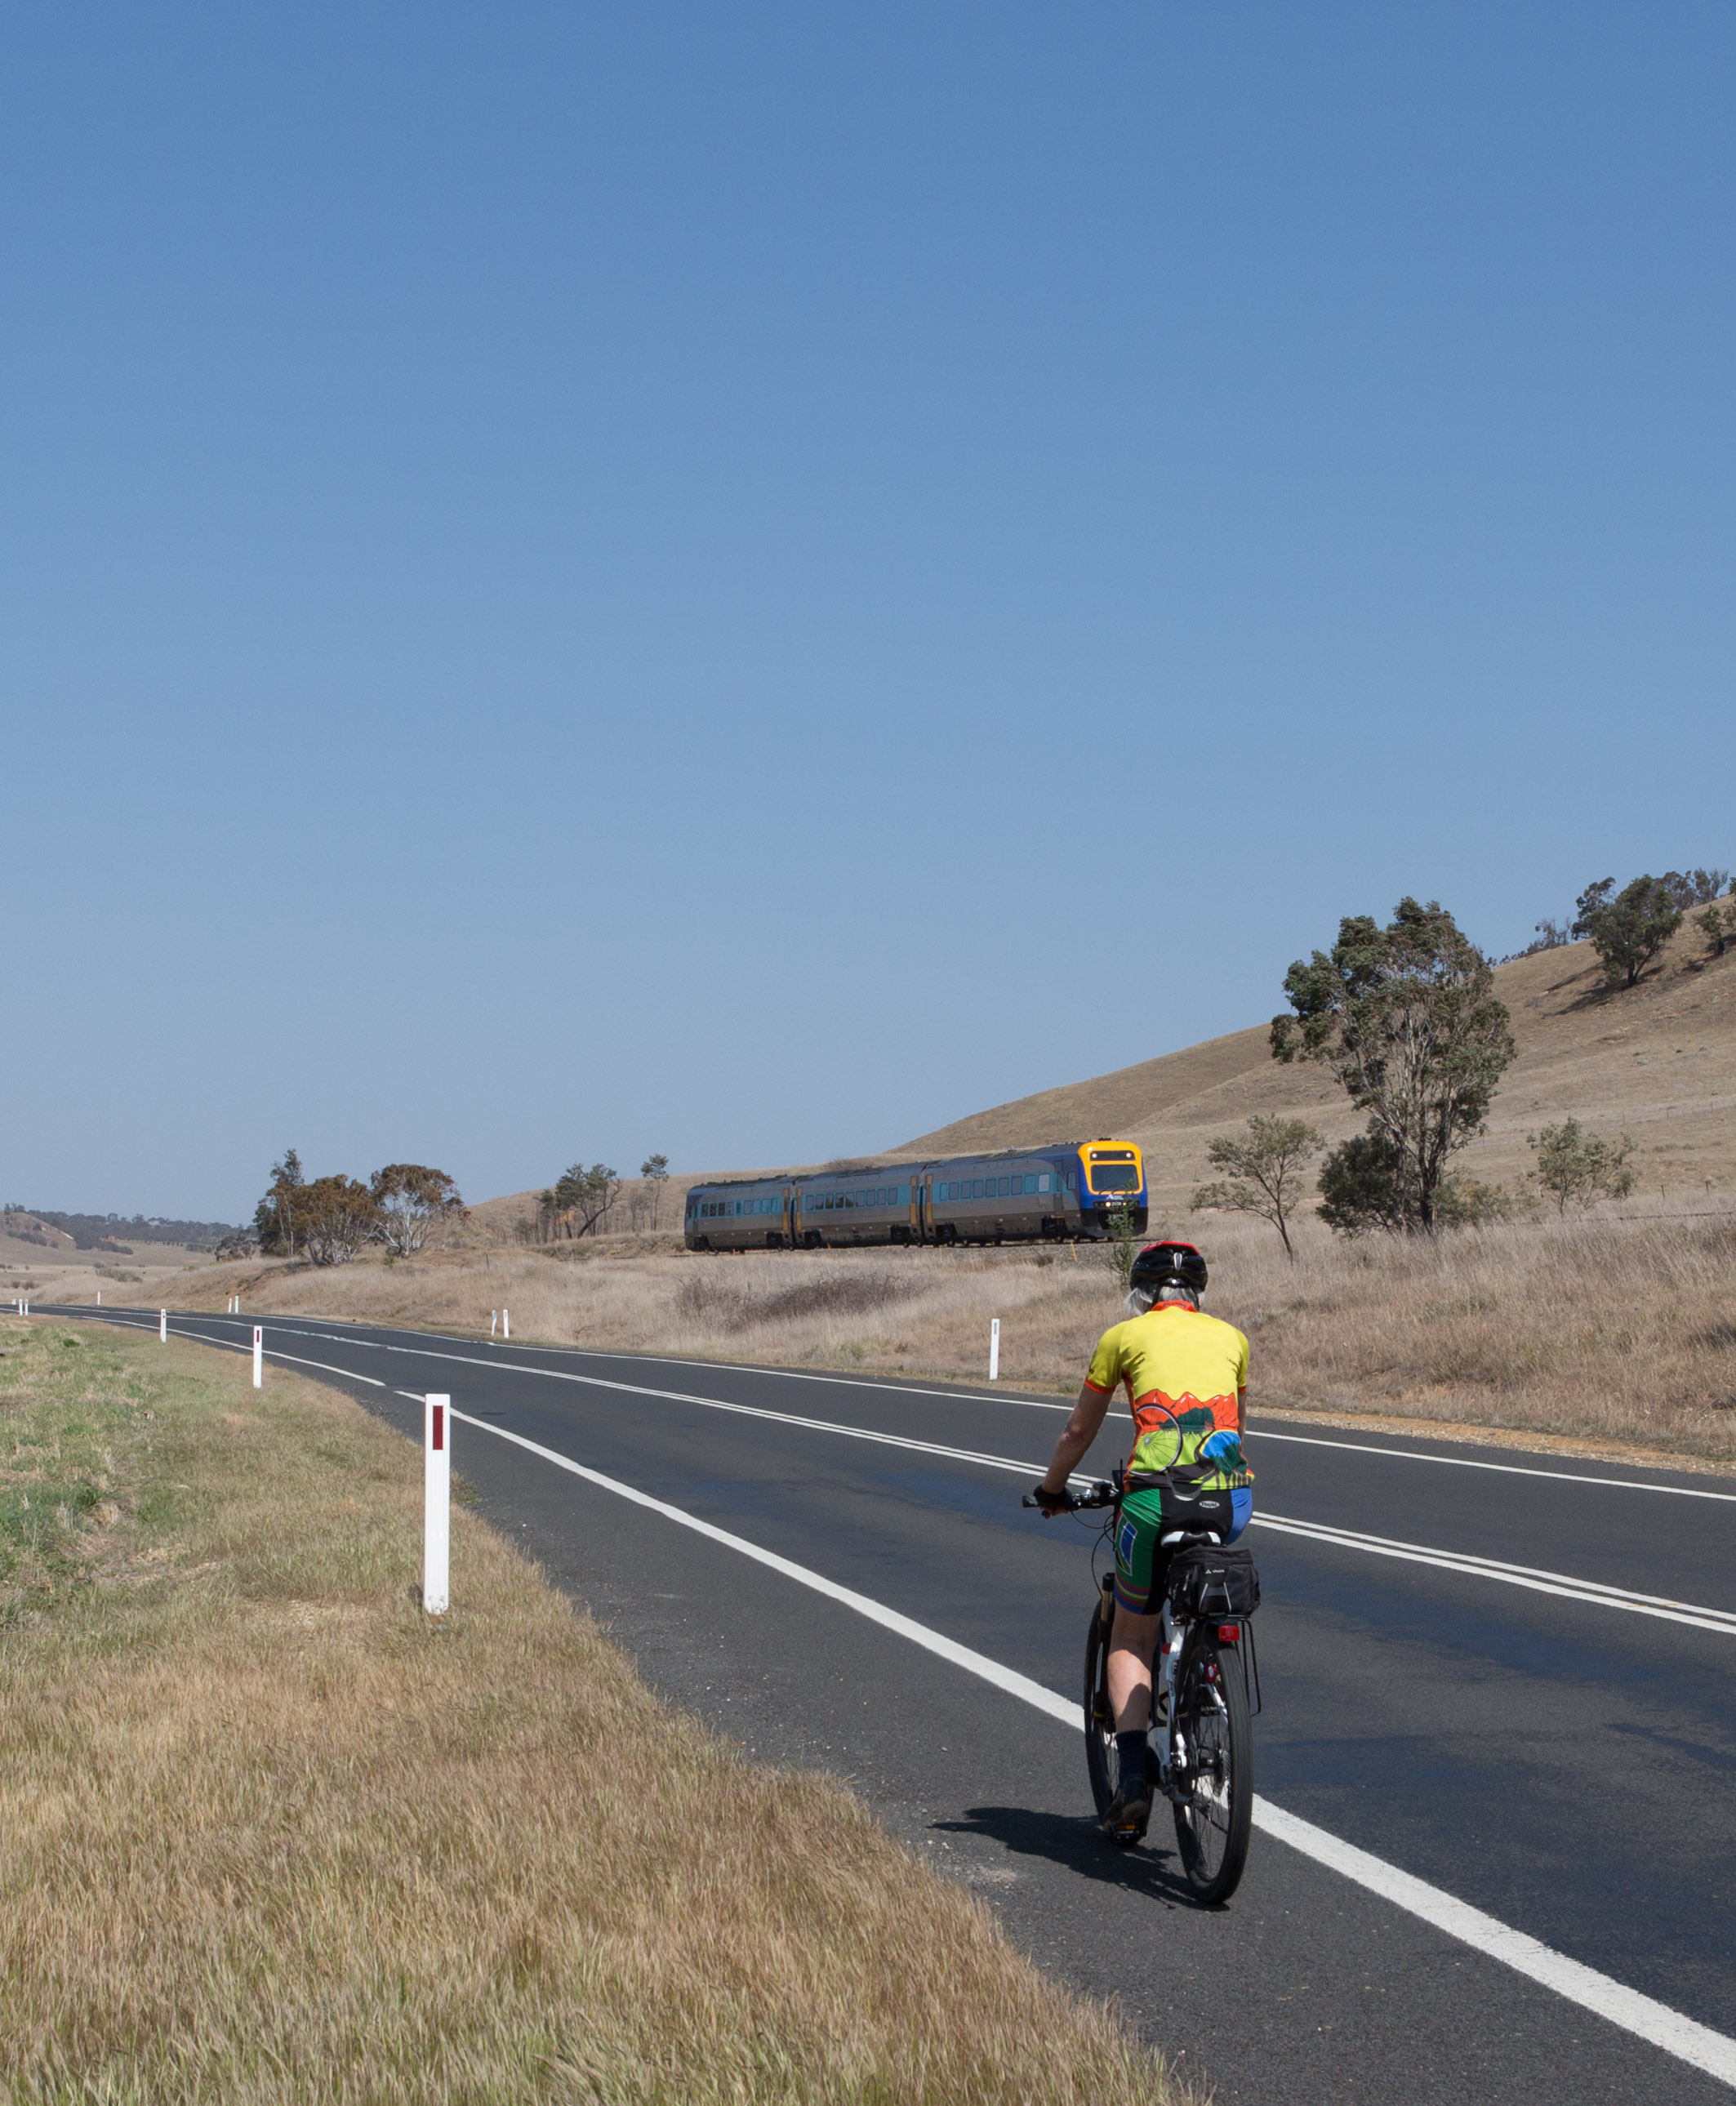 One of our cyclists on the road to Tarago with the Canberra to Sydney XPT heading towards Sydney.